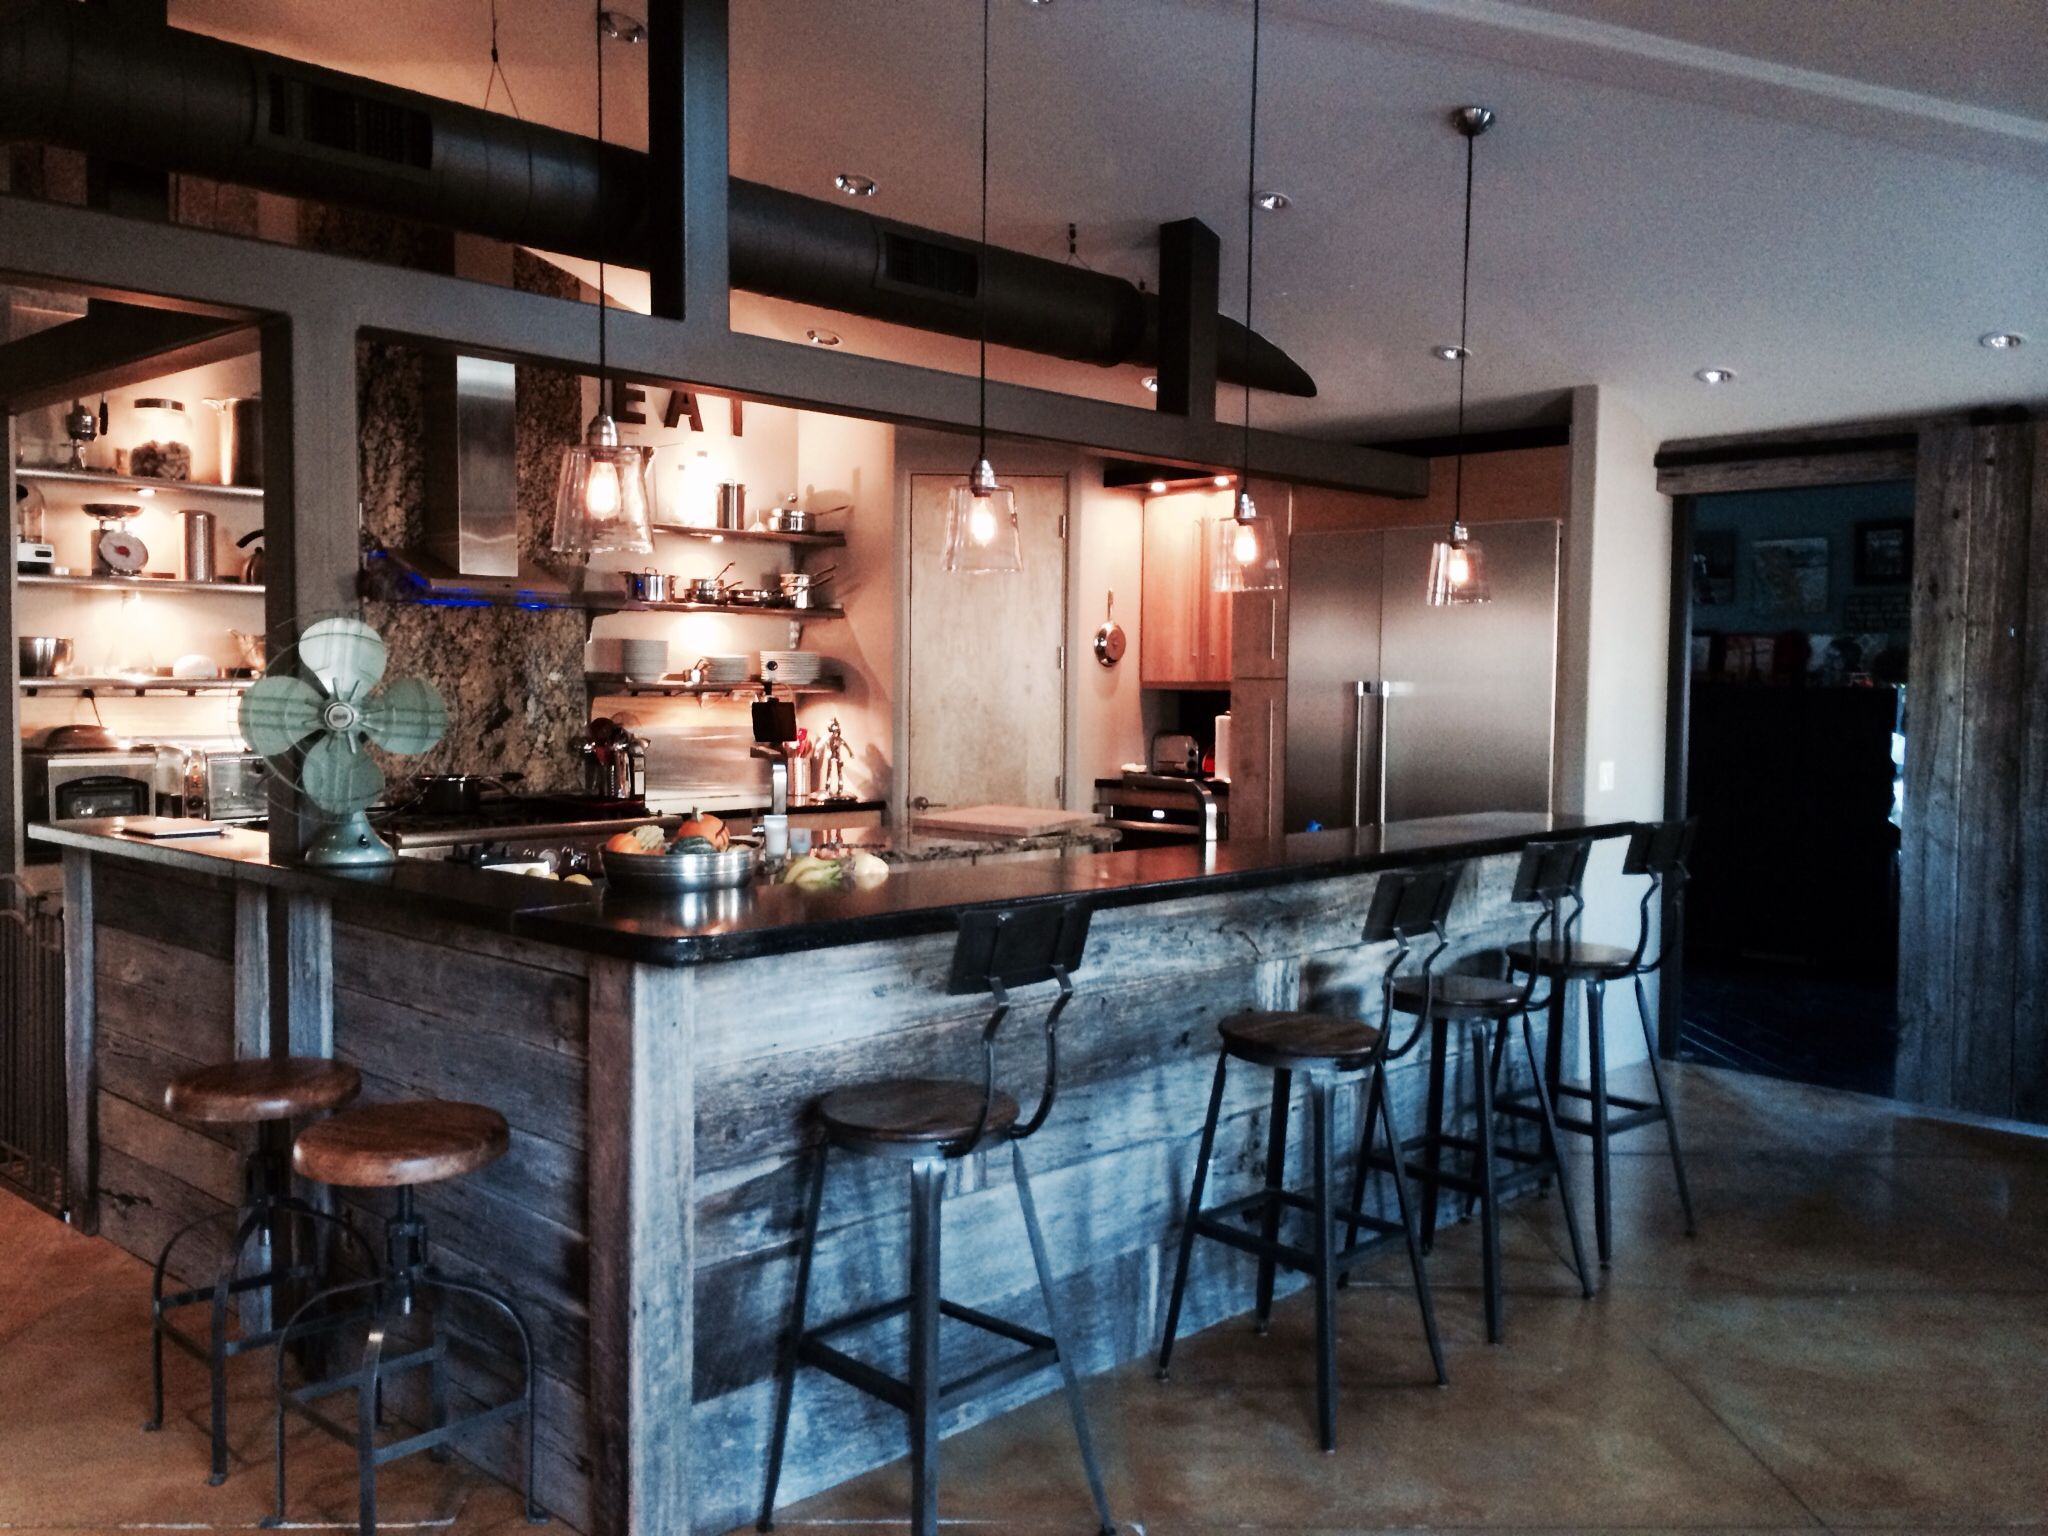 Pin by producergirl on Decor | Industrial chic decor ...